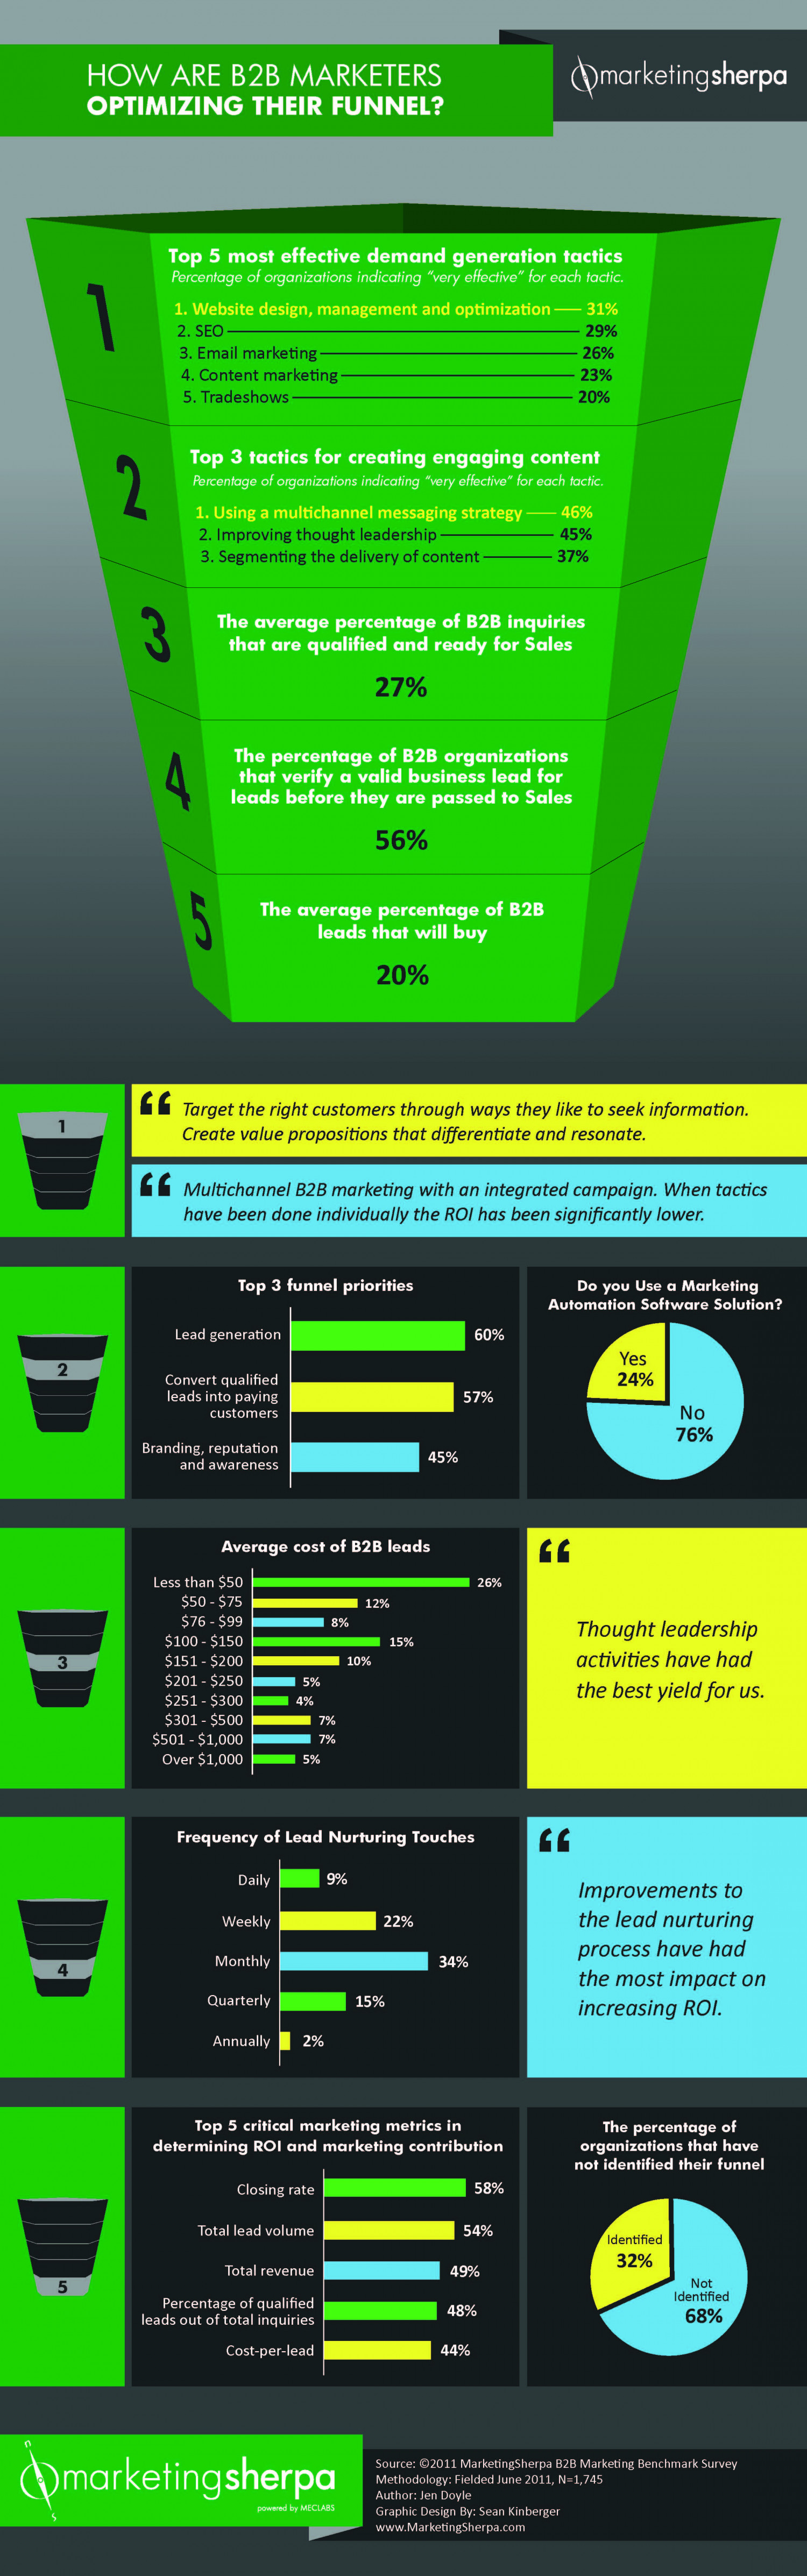 How are B2B marketers optimizing their funnel? Infographic